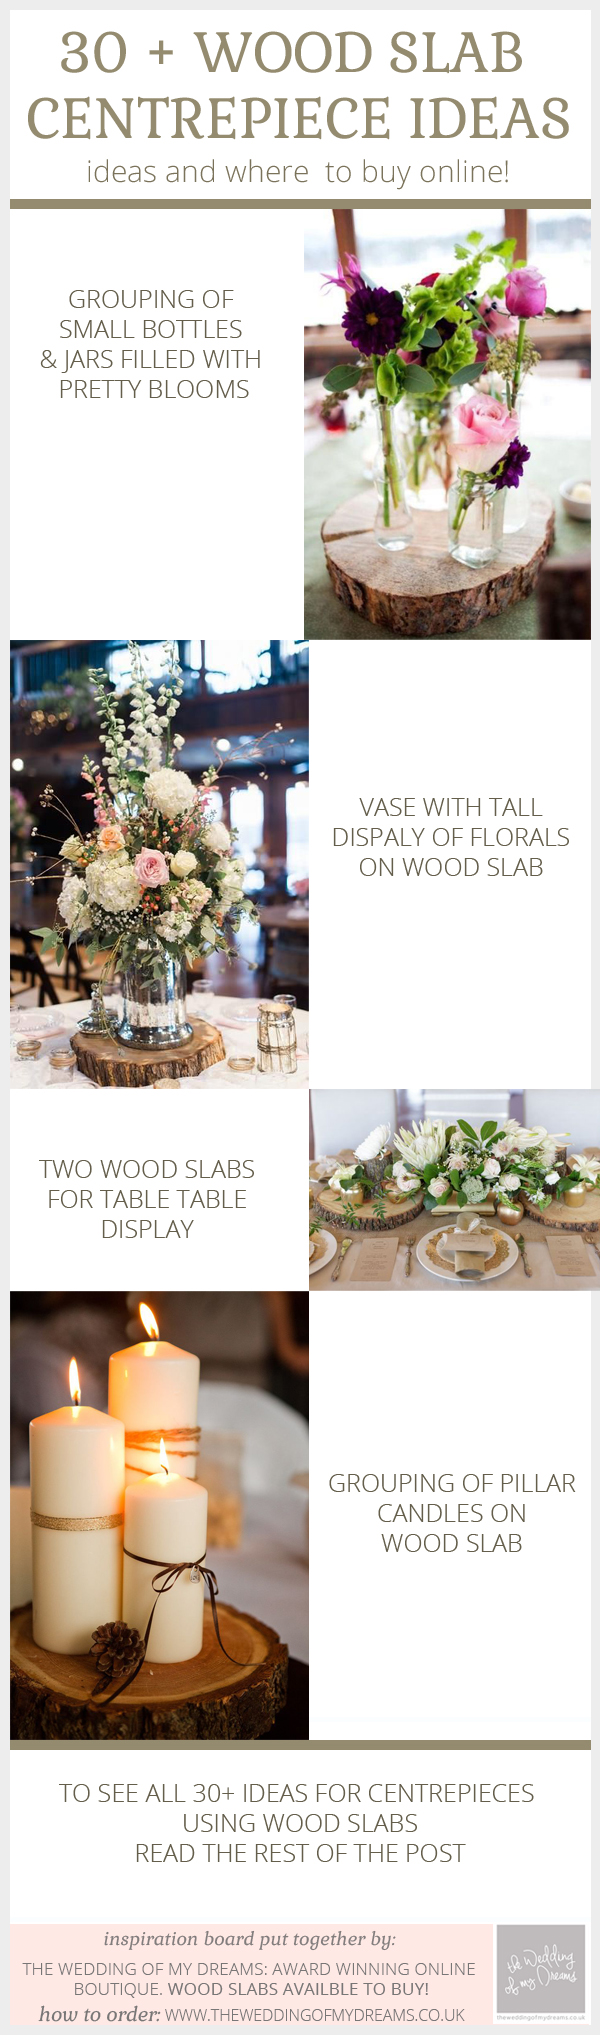 30 + wood slab centrepieces ideas and where to buy online